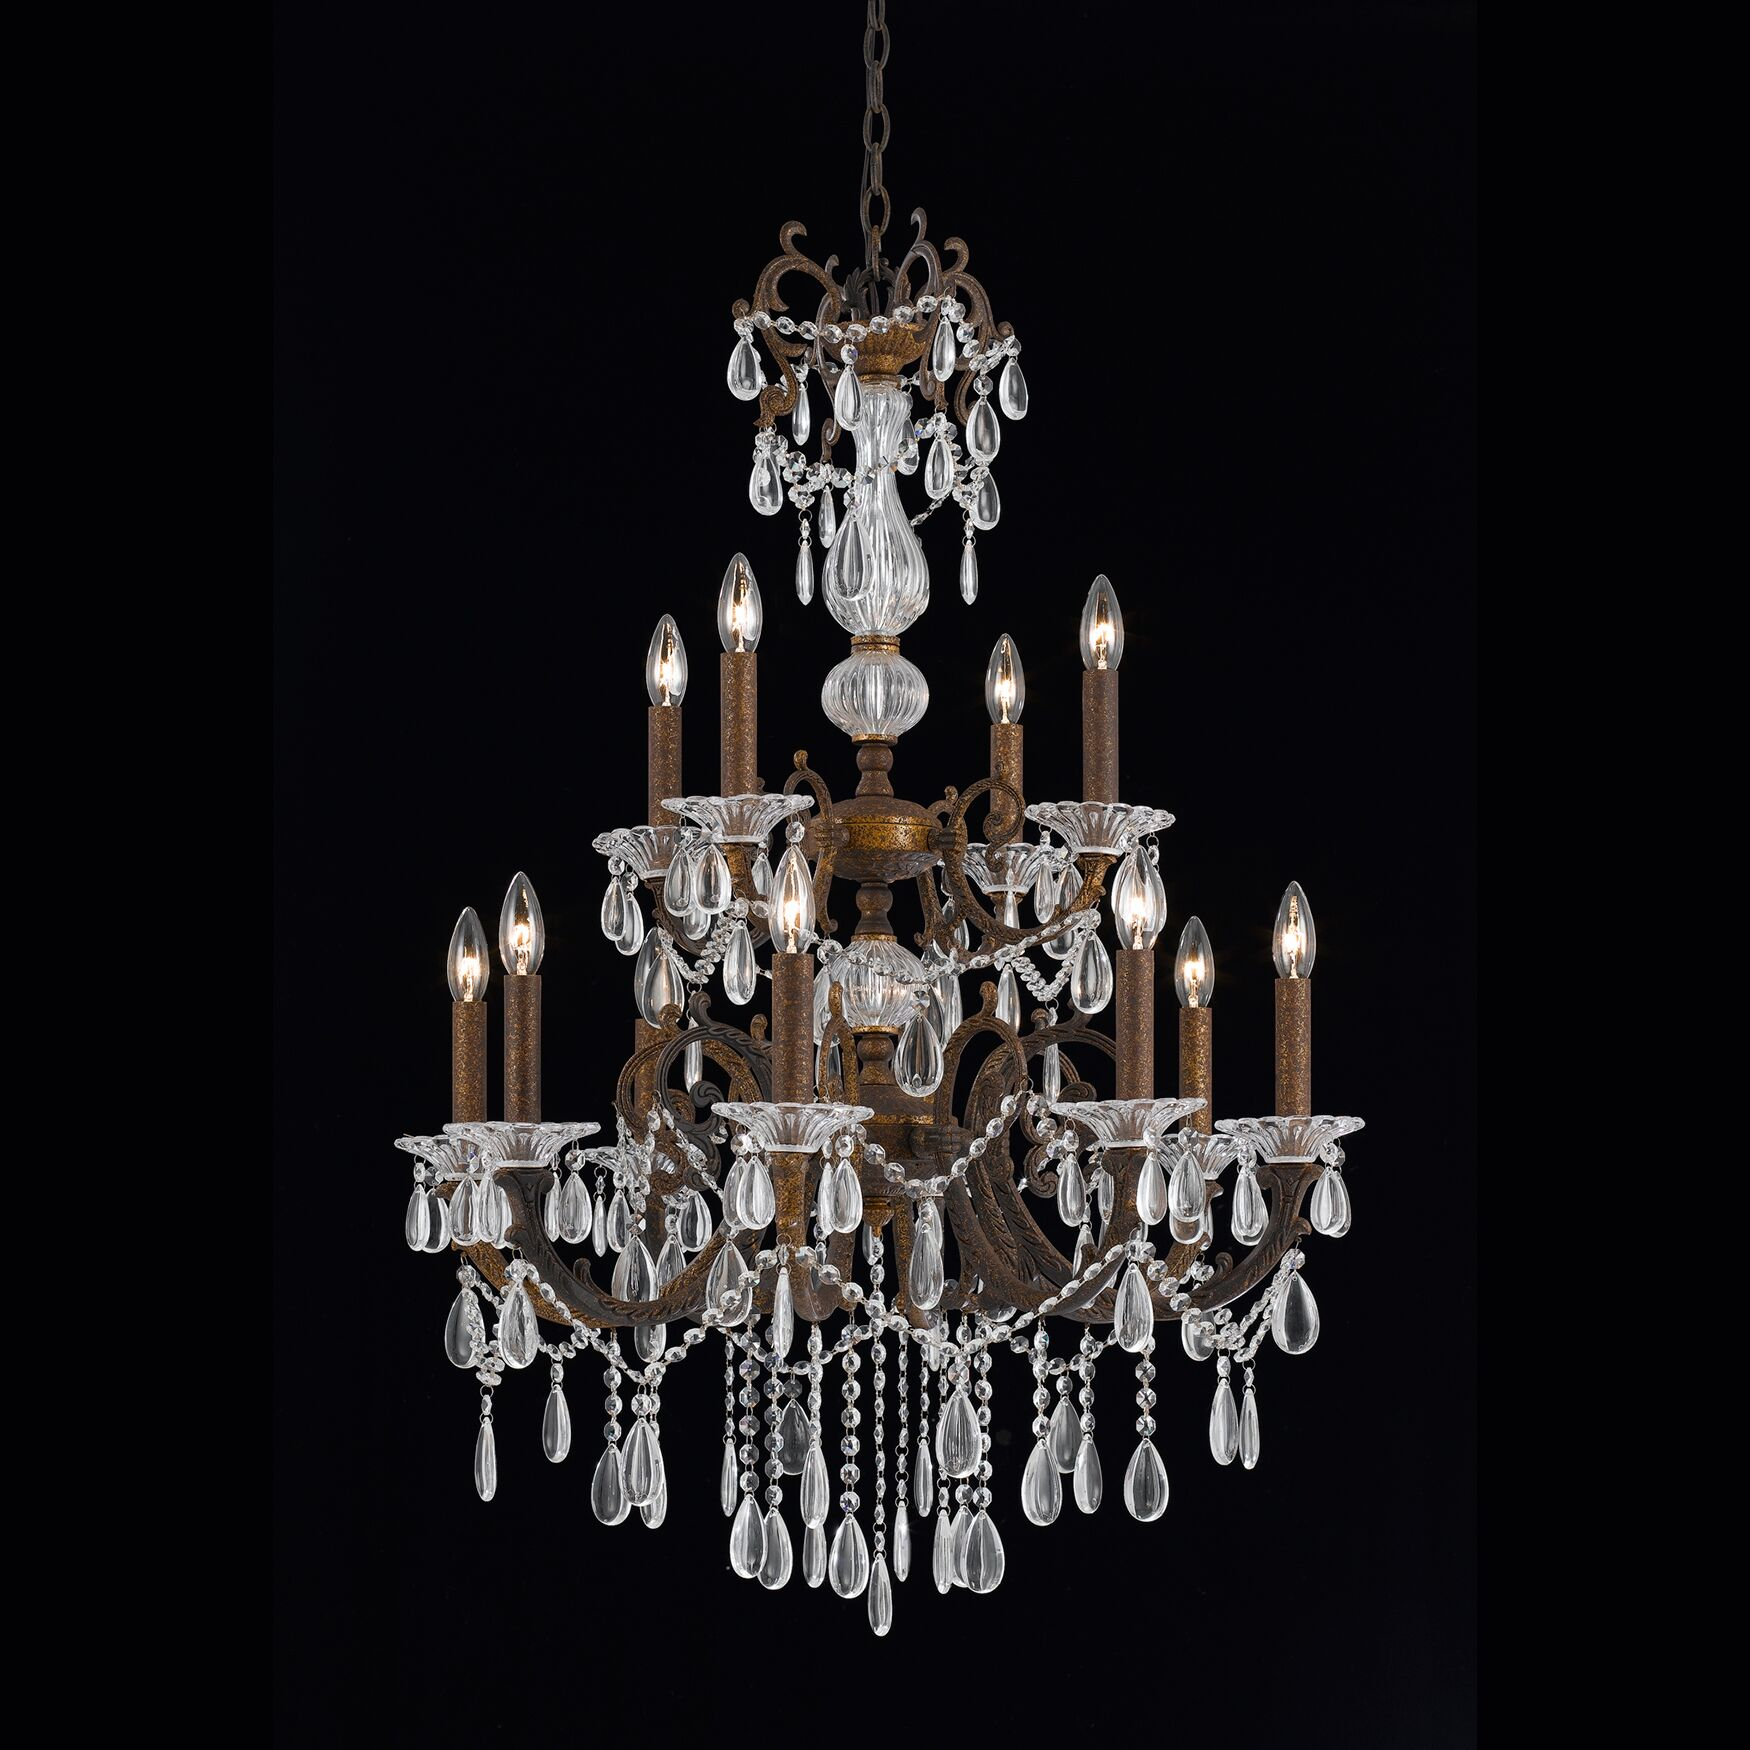 Donat 12-Light Candle Style Chandelier